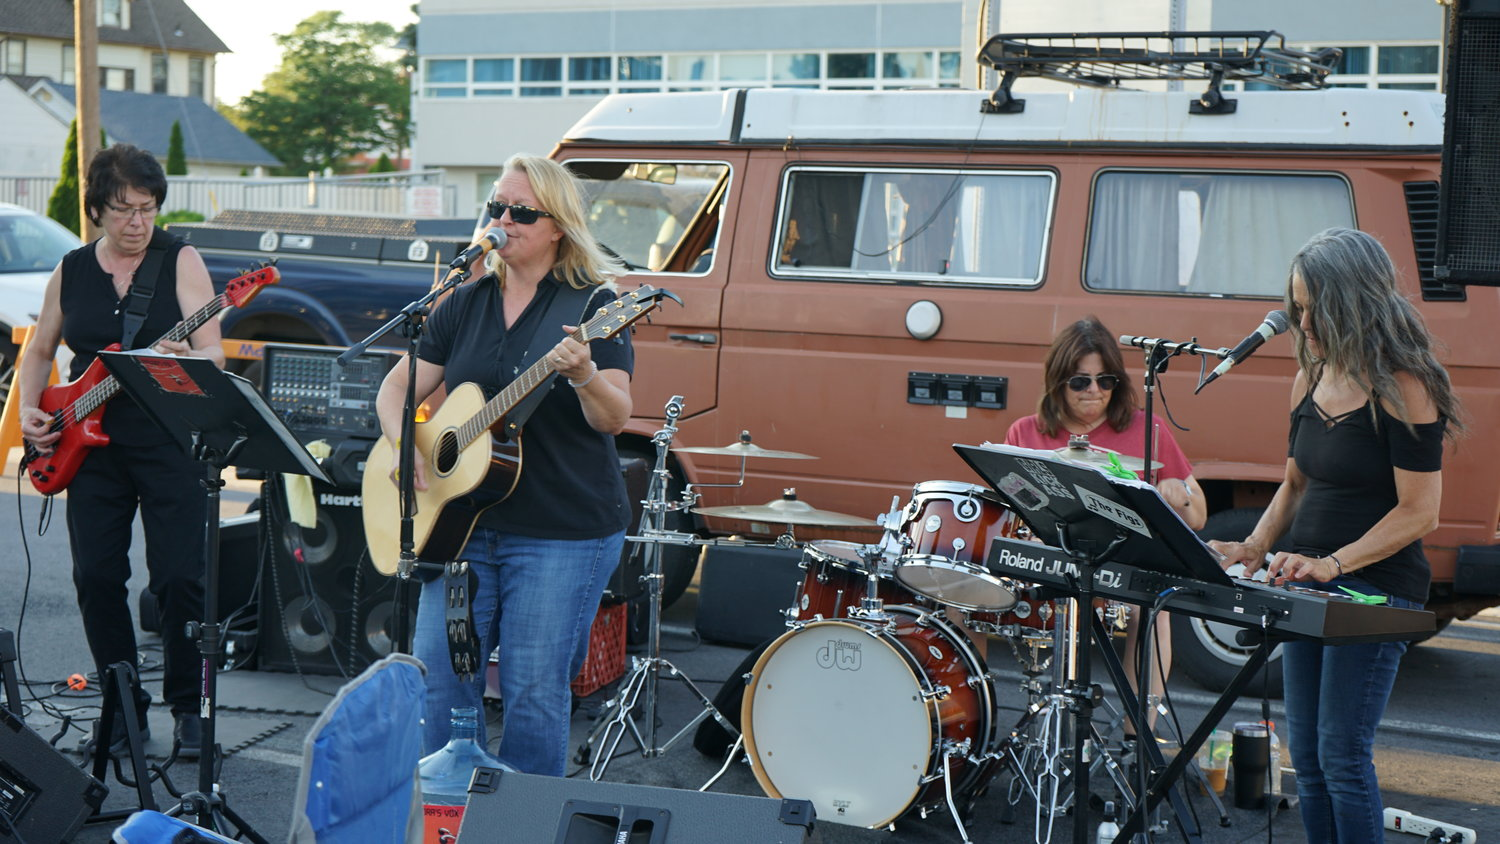 Local band Pandora's Vox played some oldies for the gathered crowd.